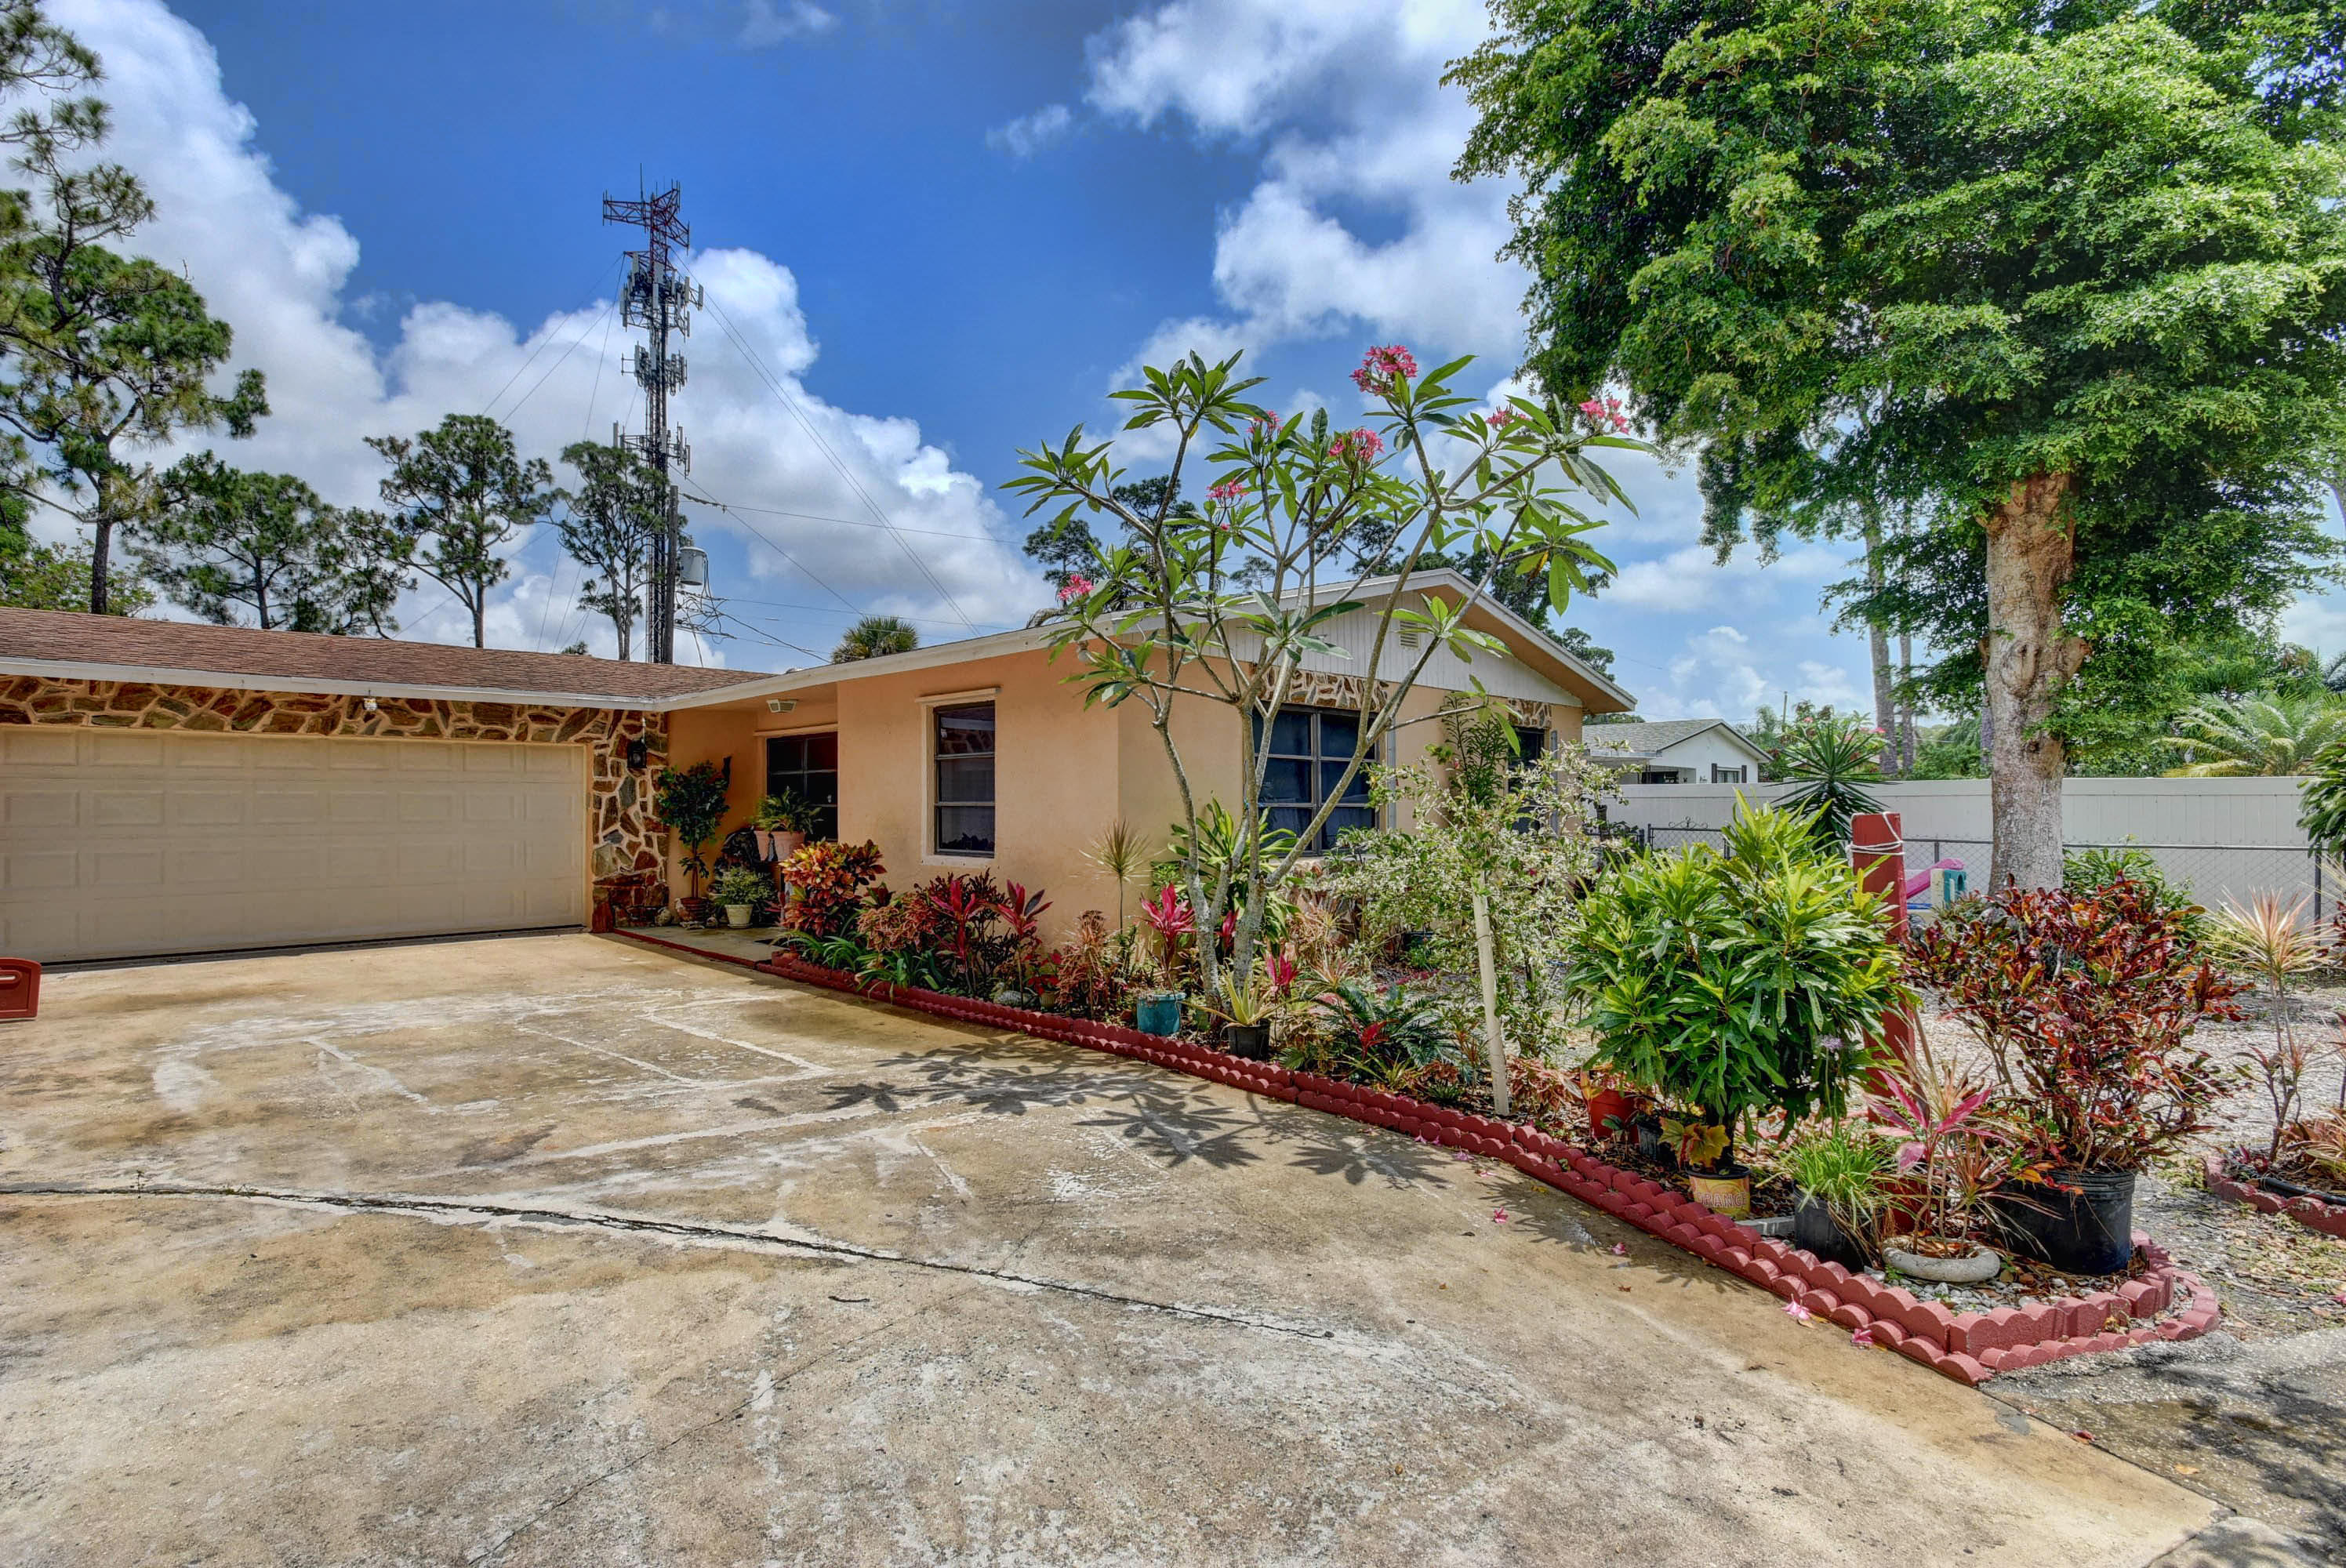 Home for sale in S/D OF 36-44-42, NW 1/4 Lake Worth Florida